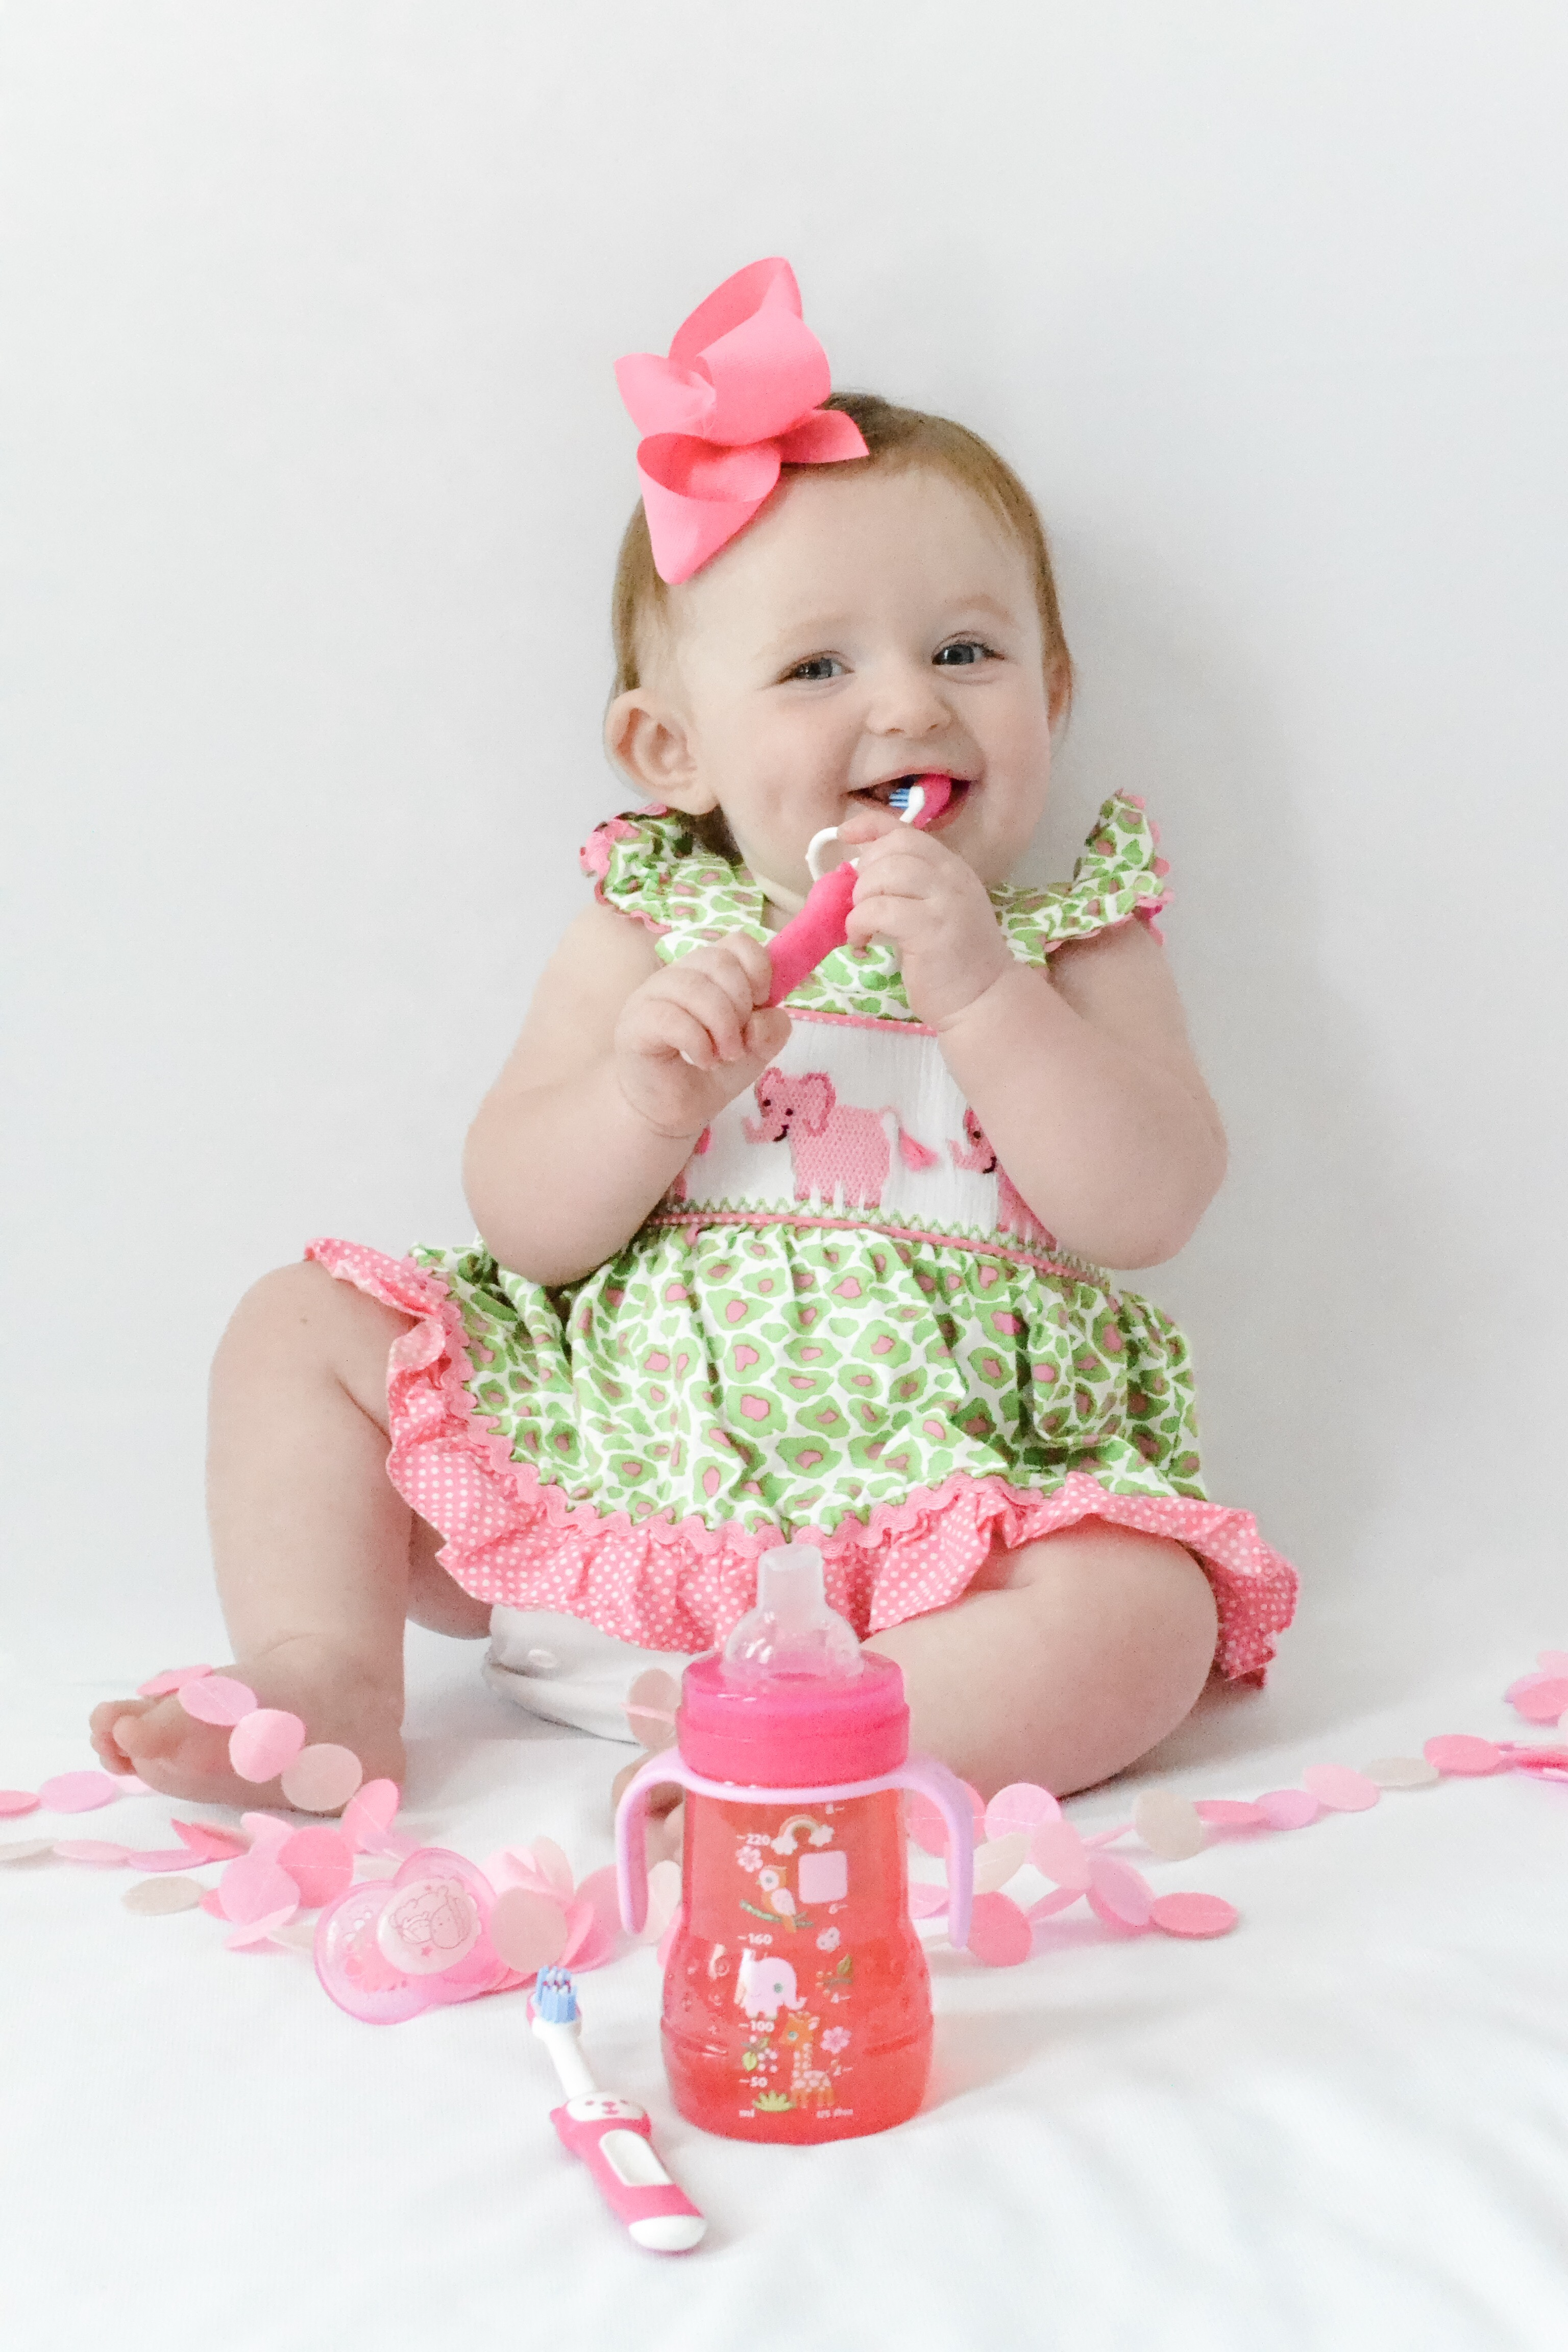 Our Top Teething and Baby Oral Care Finds